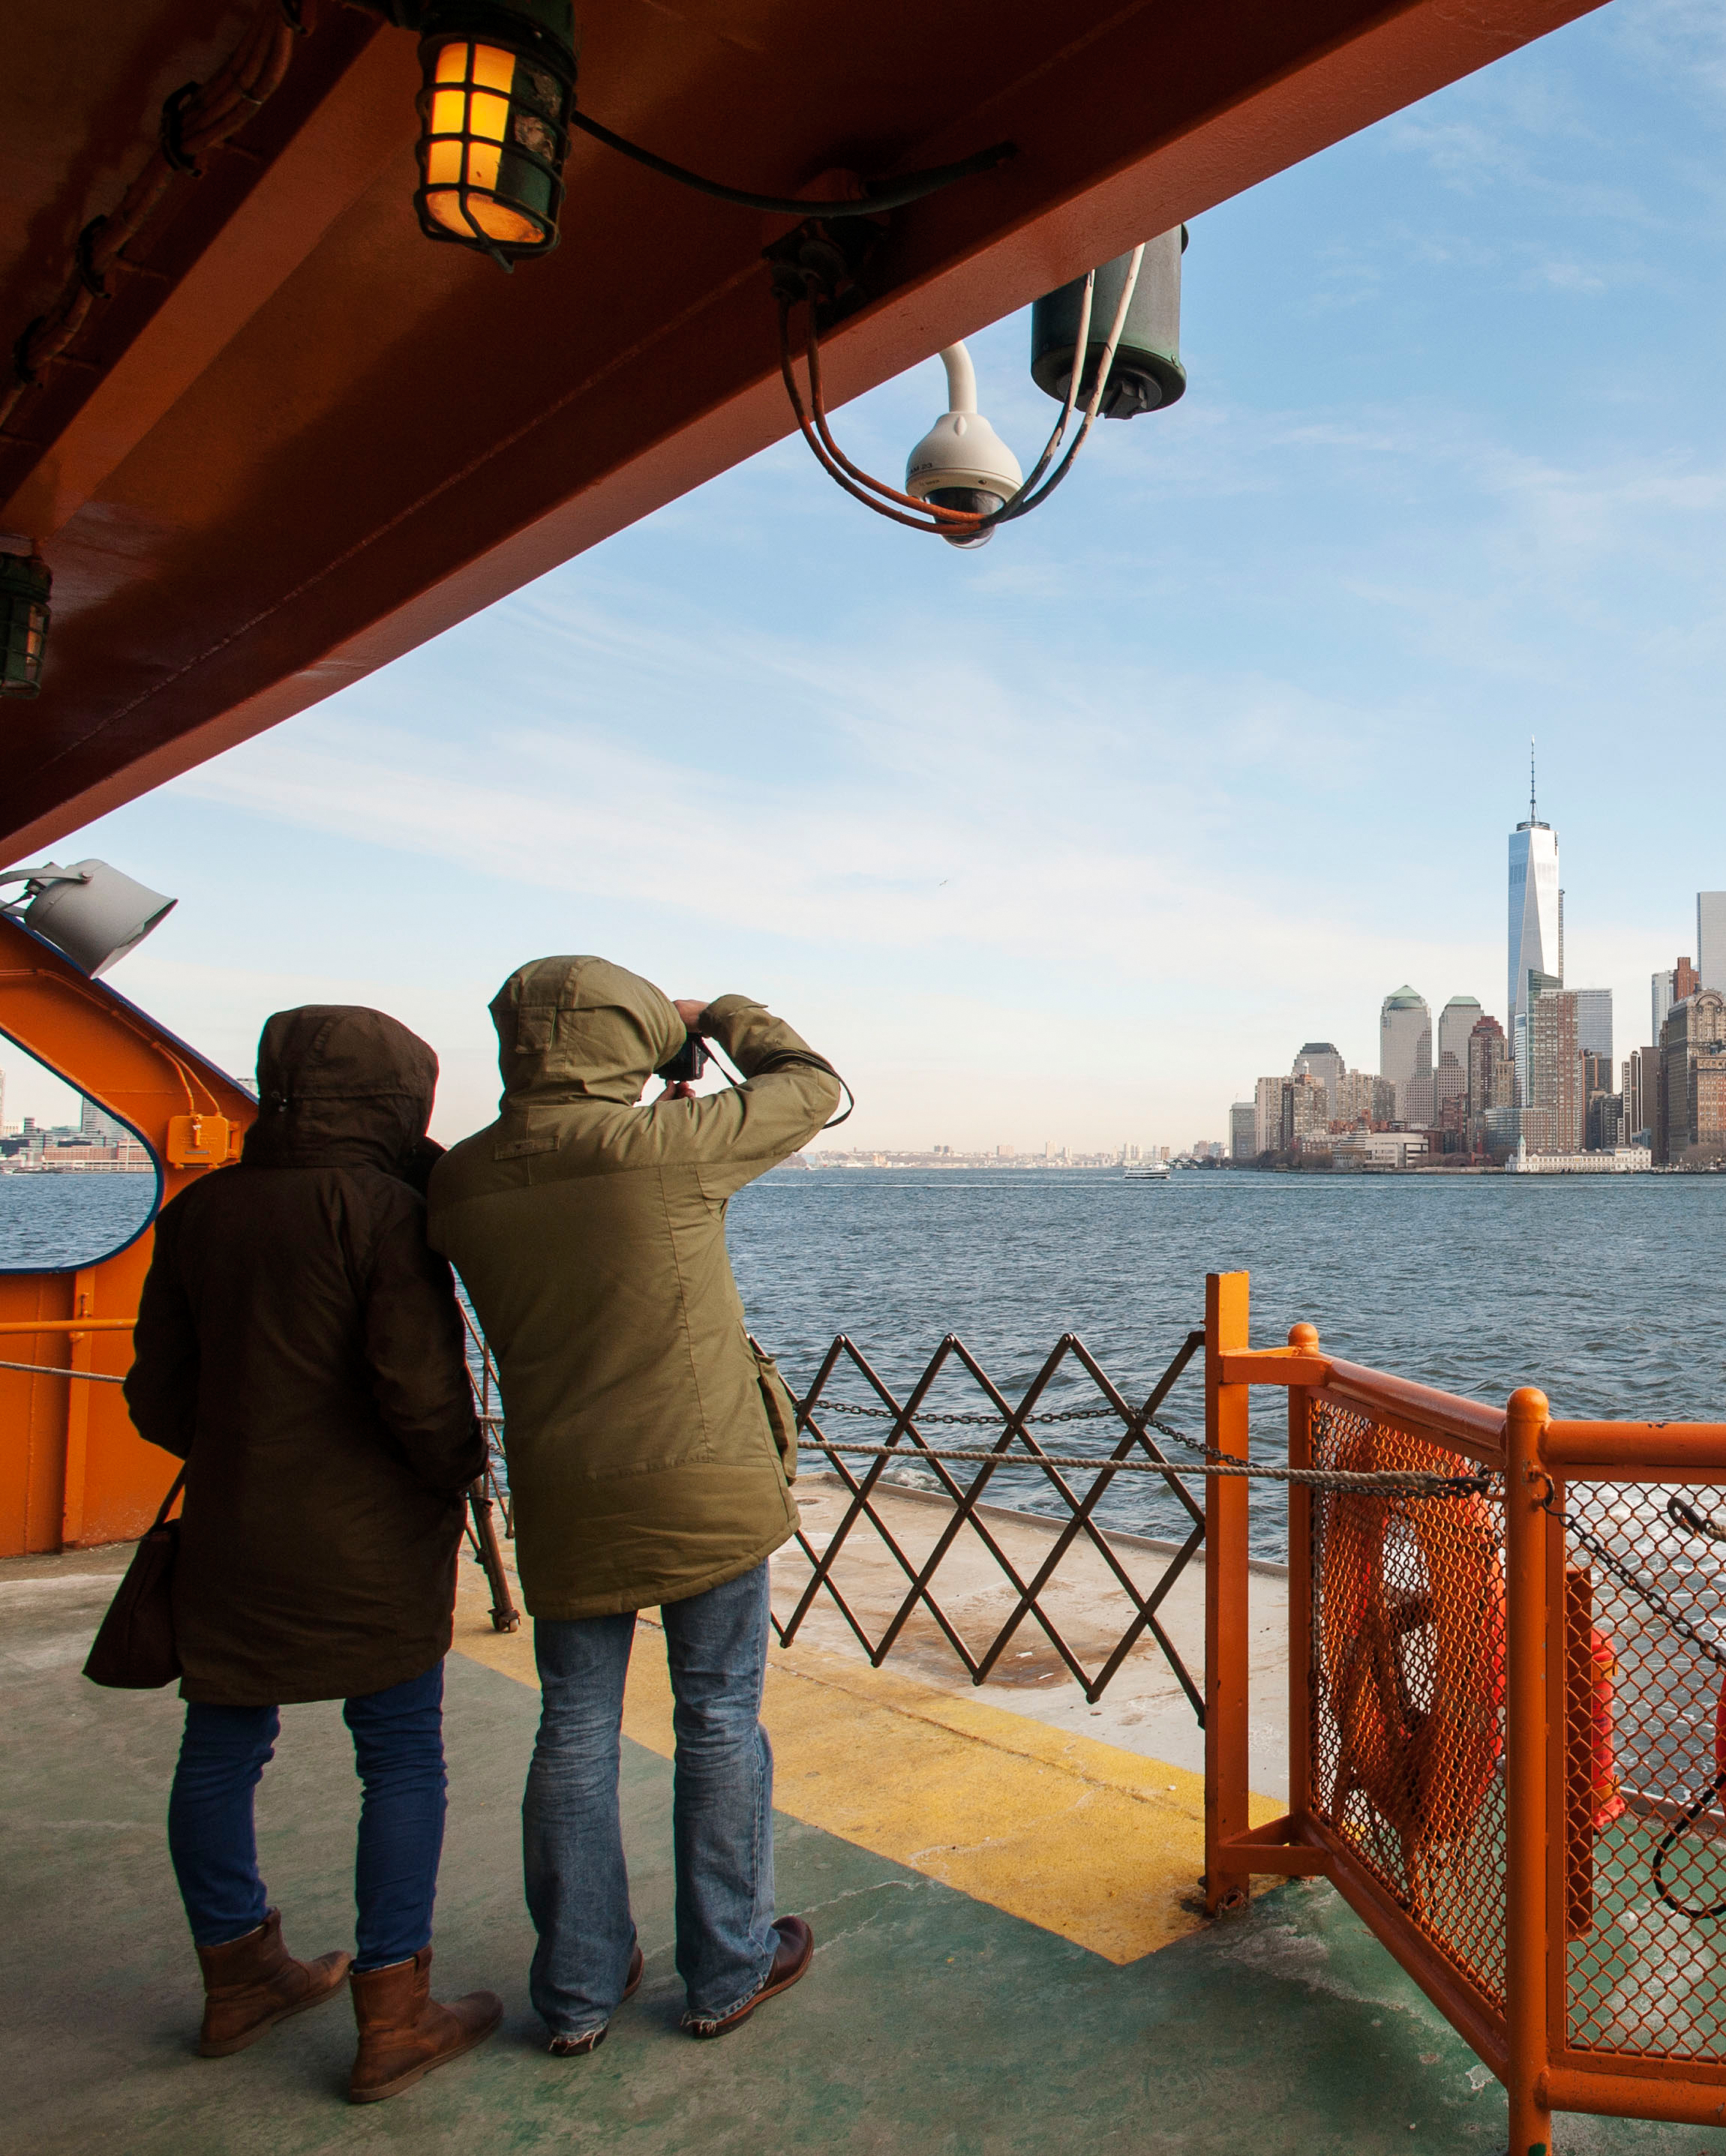 nyc-proposal-spot-staten-island-ferry-view-of-manhattan-skyline-1114.jpg